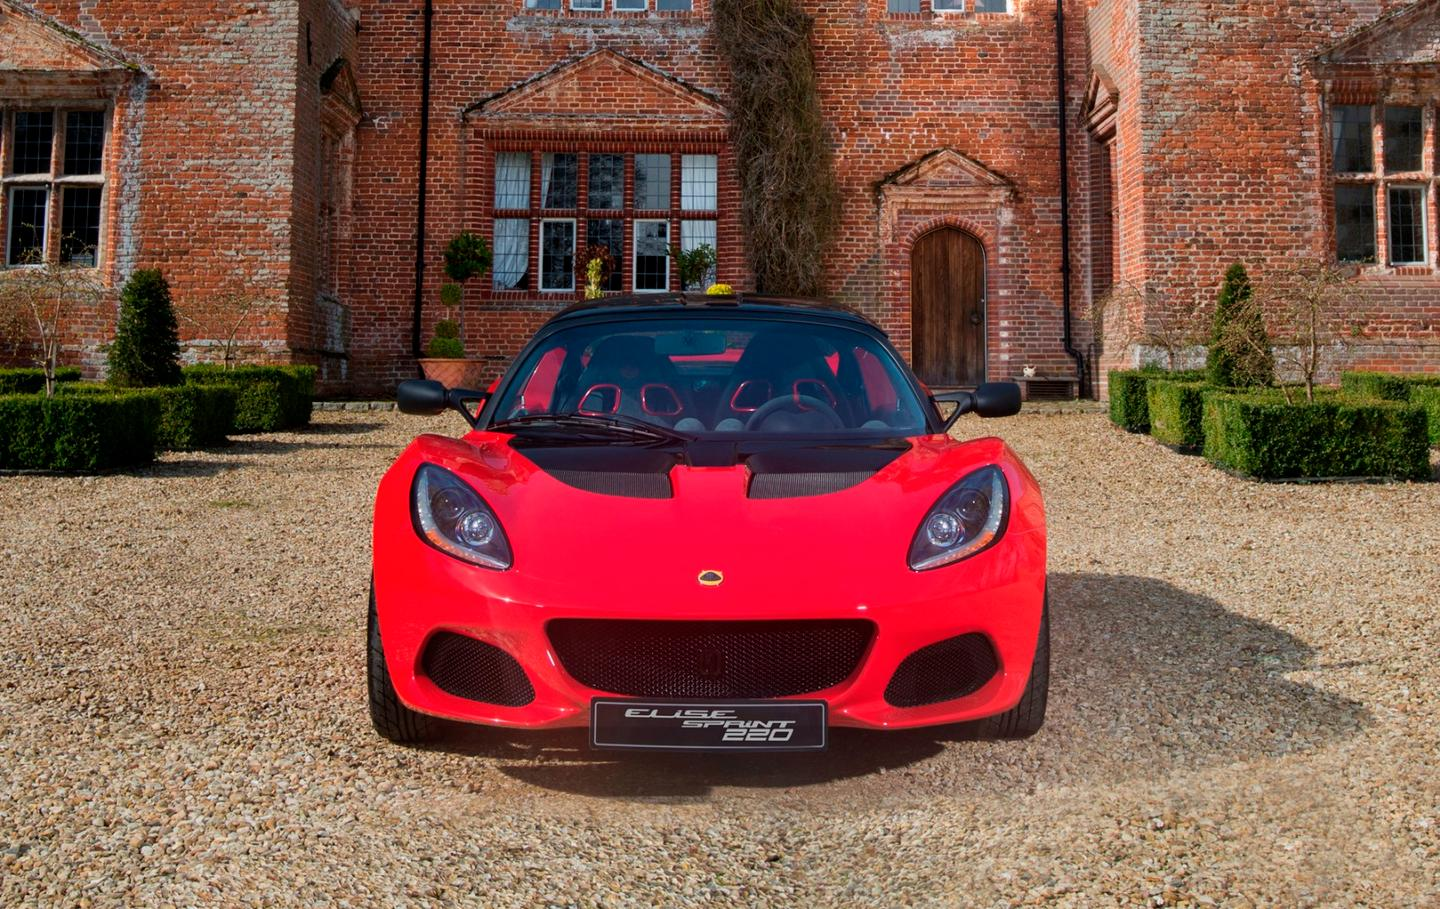 The Lotus Elise has a new nose for a slight weight saving